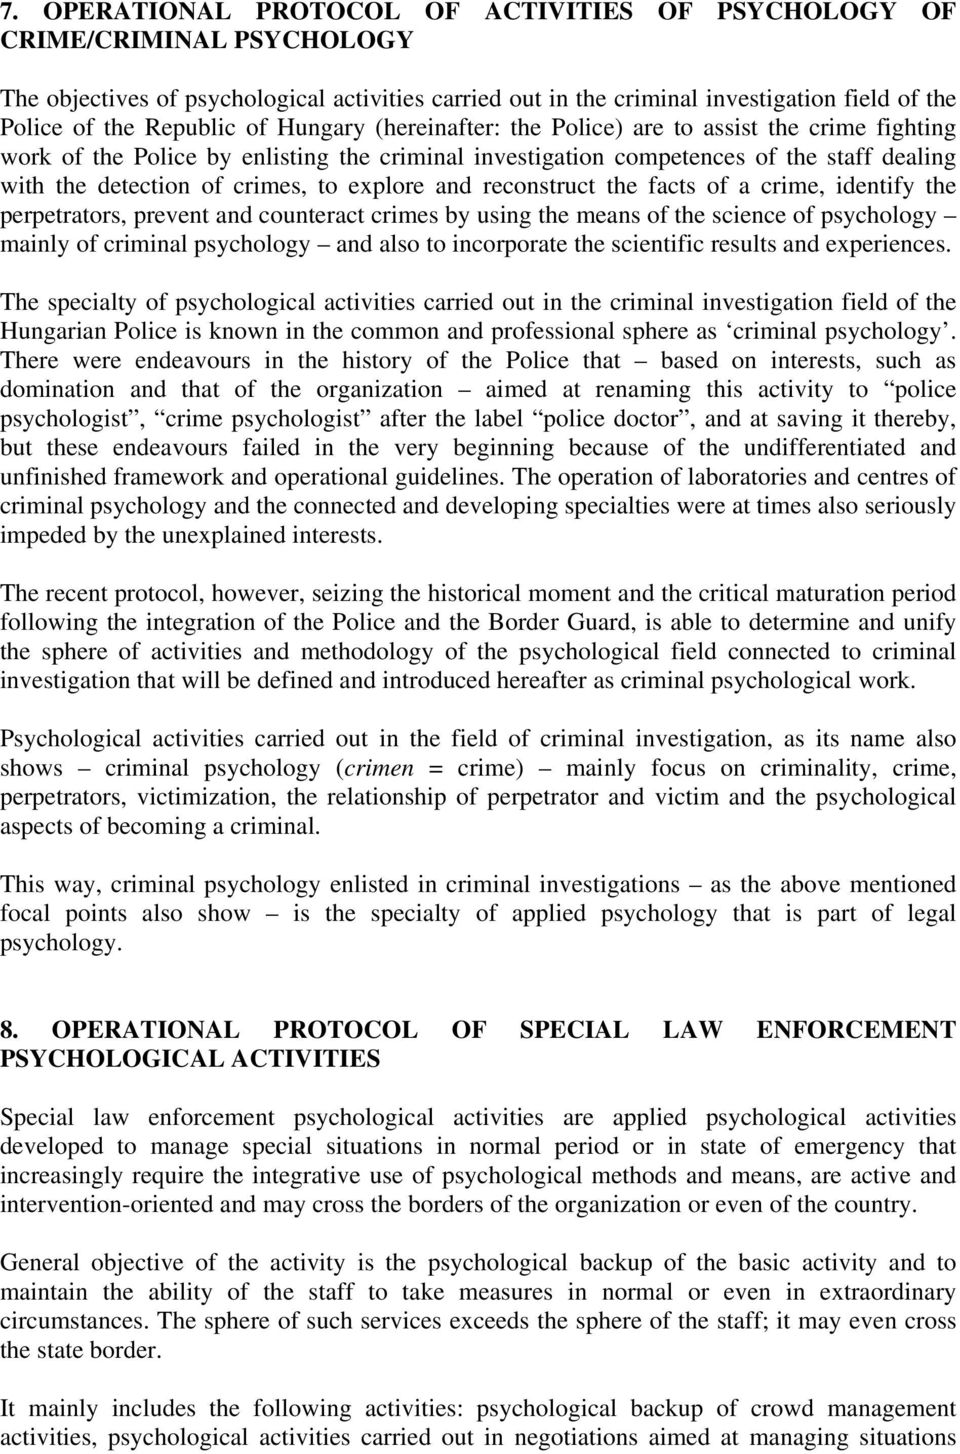 crimes, to explore and reconstruct the facts of a crime, identify the perpetrators, prevent and counteract crimes by using the means of the science of psychology mainly of criminal psychology and